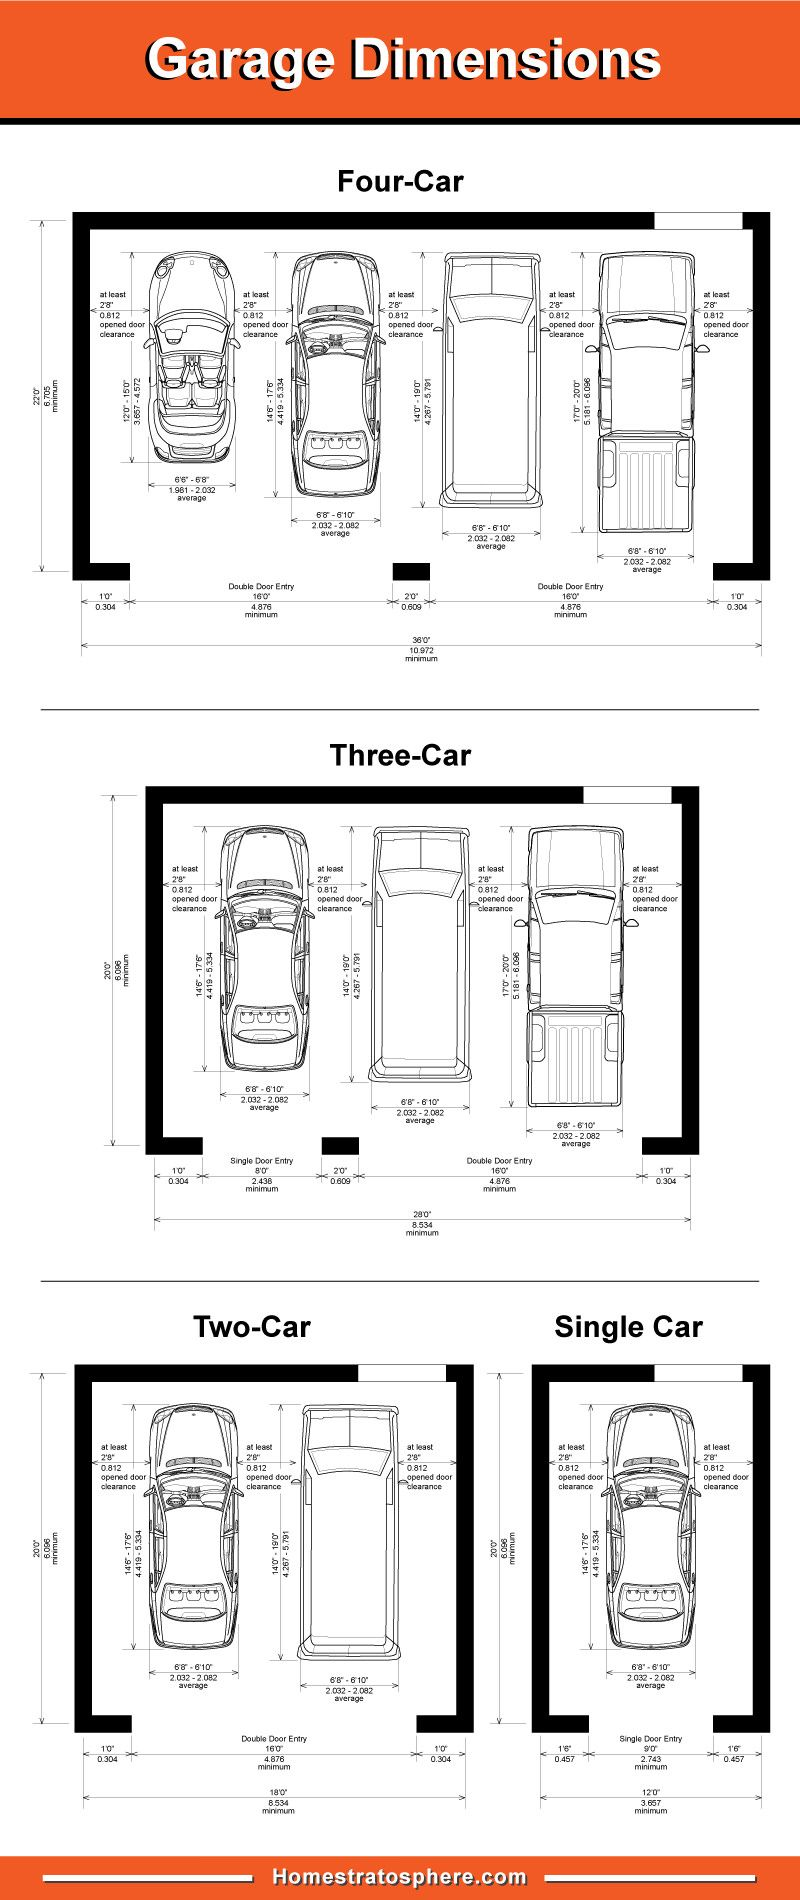 Garage Design Dimensions Standard Garage Dimensions For 1 2 3 And 4 Car Garages Diagrams